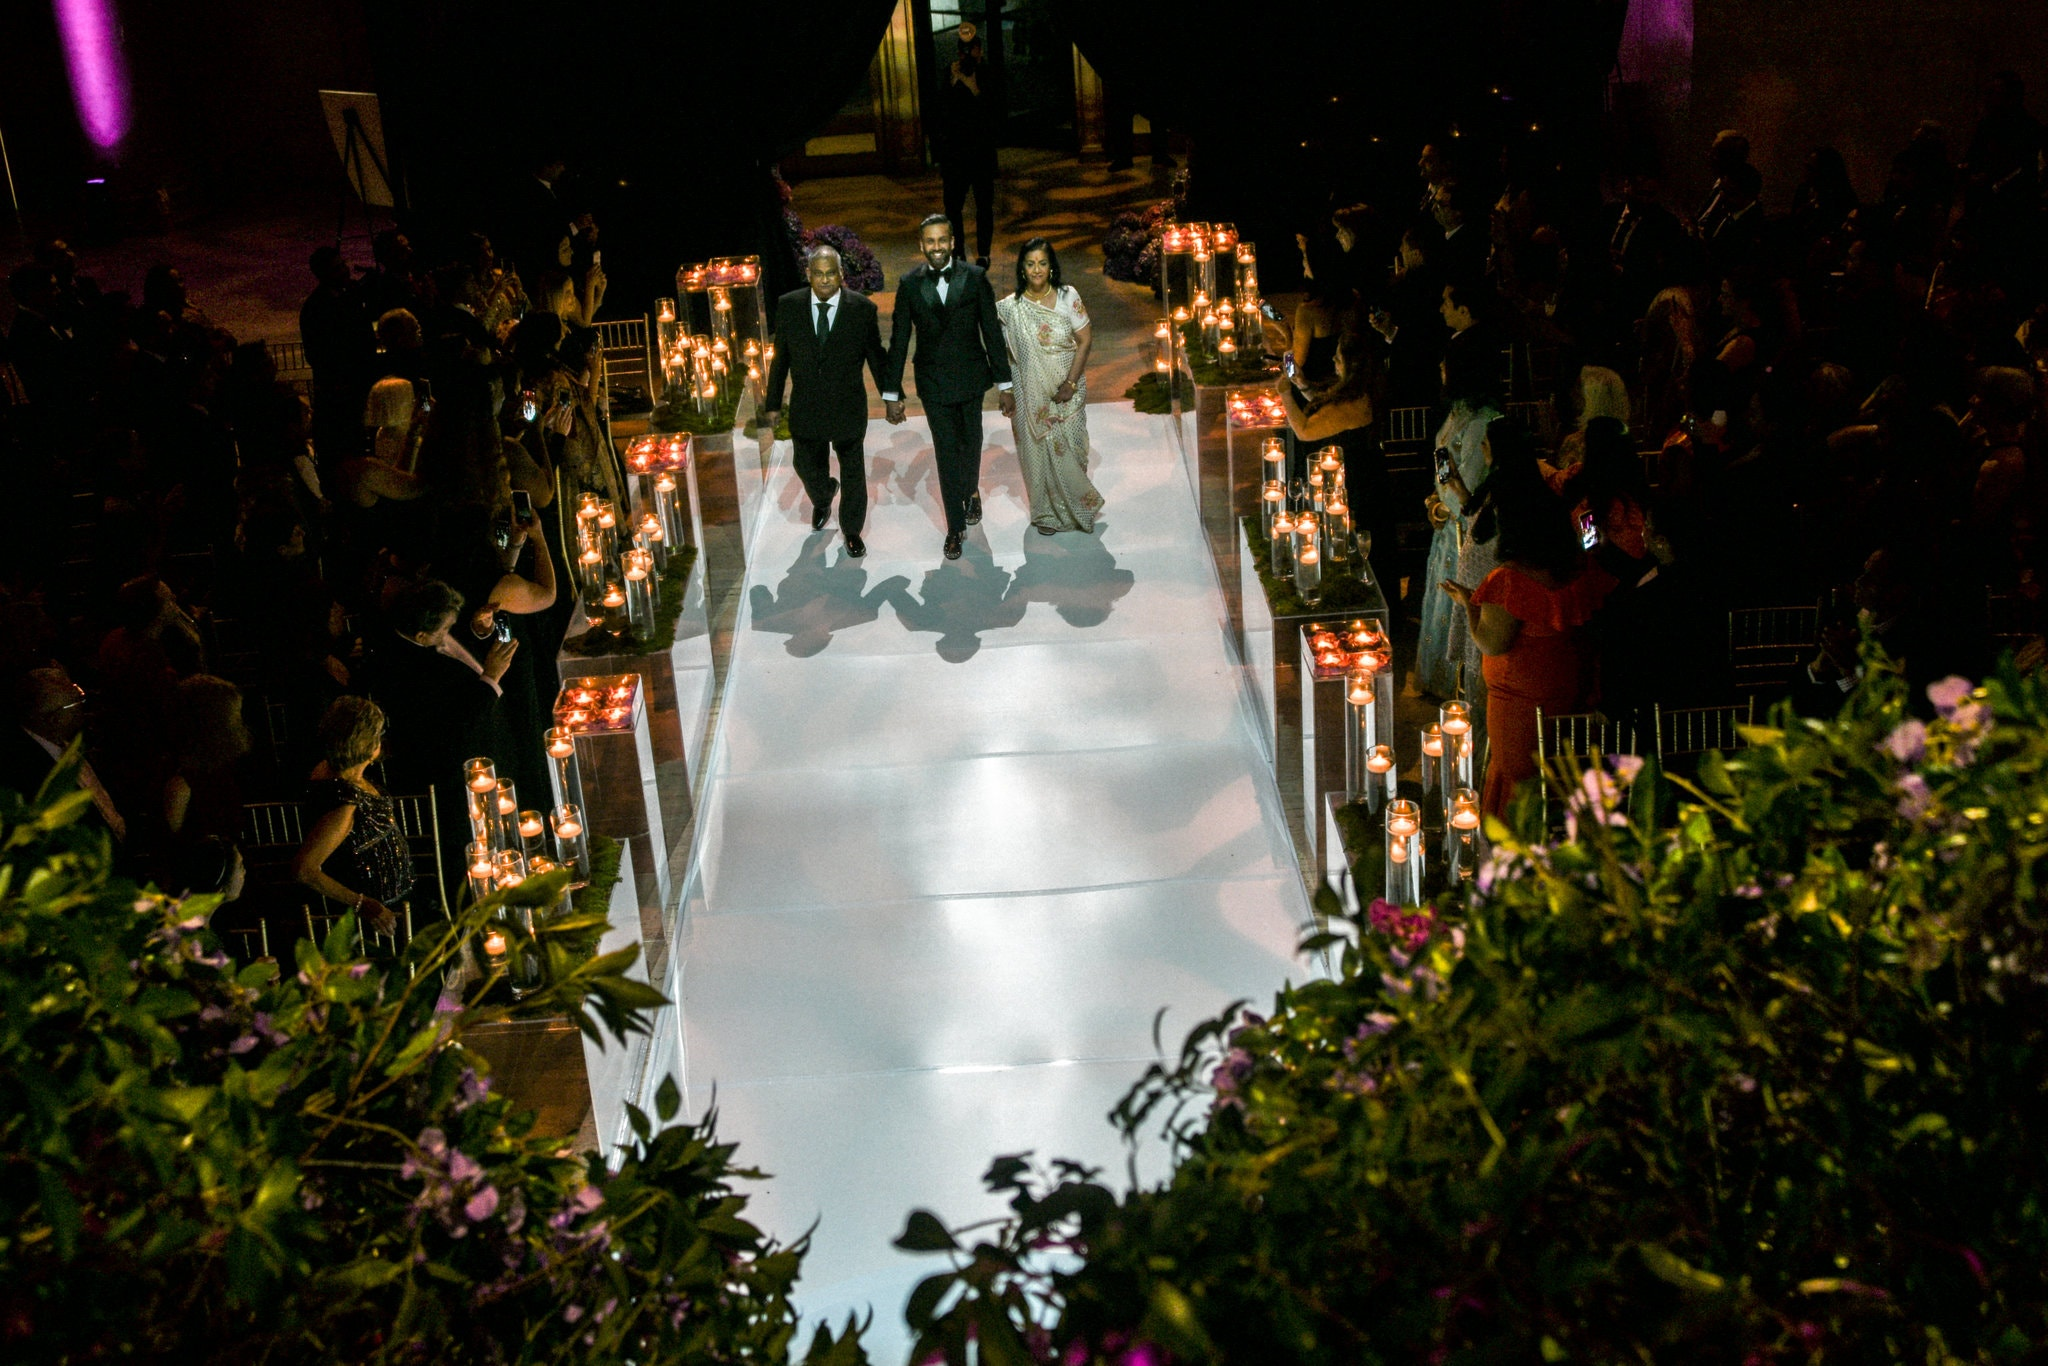 The couple make an entry to their reception